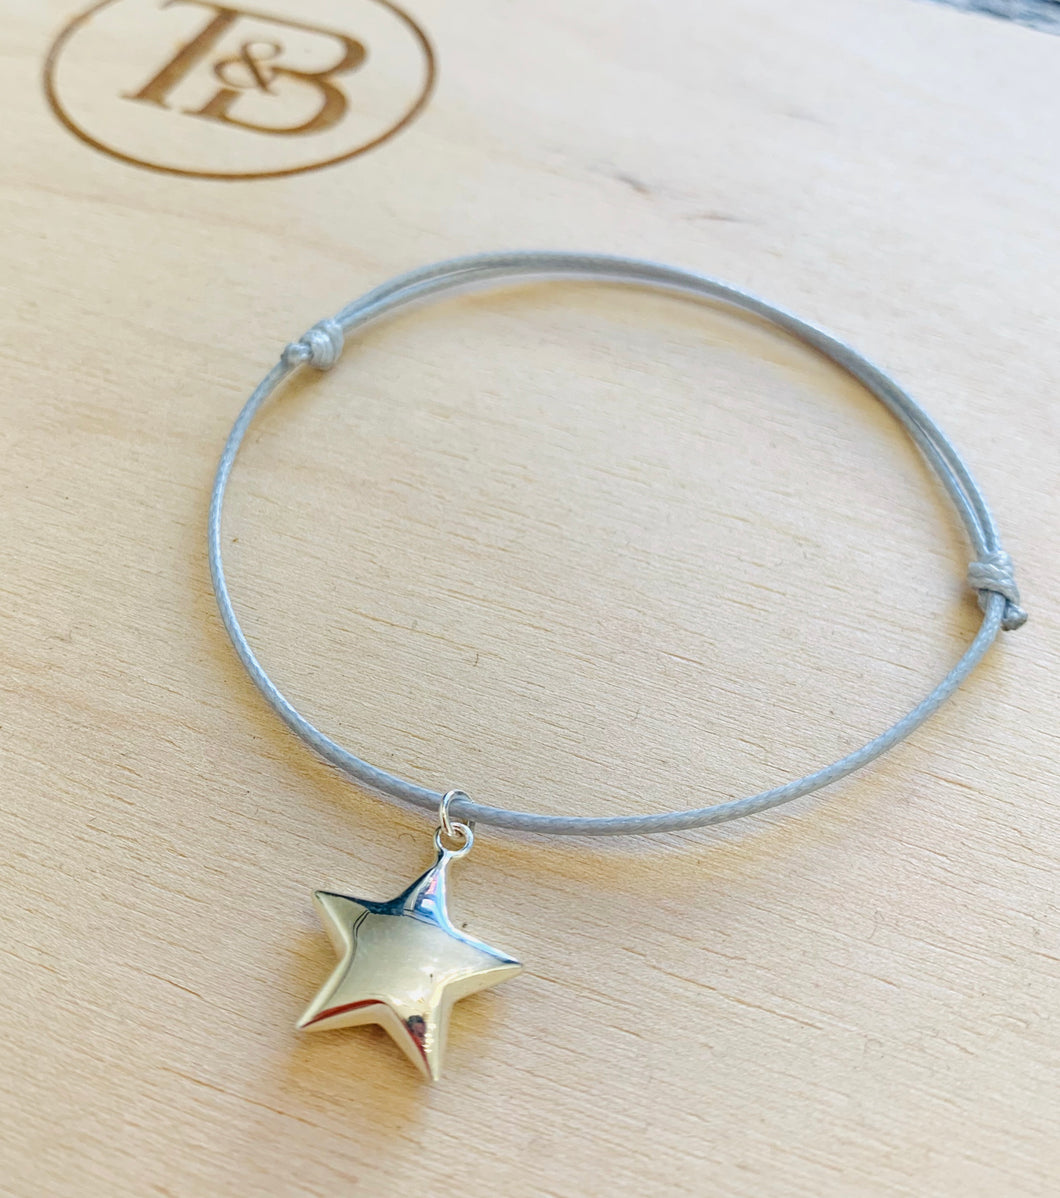 Sailing Rope Bracelet with Star Charm